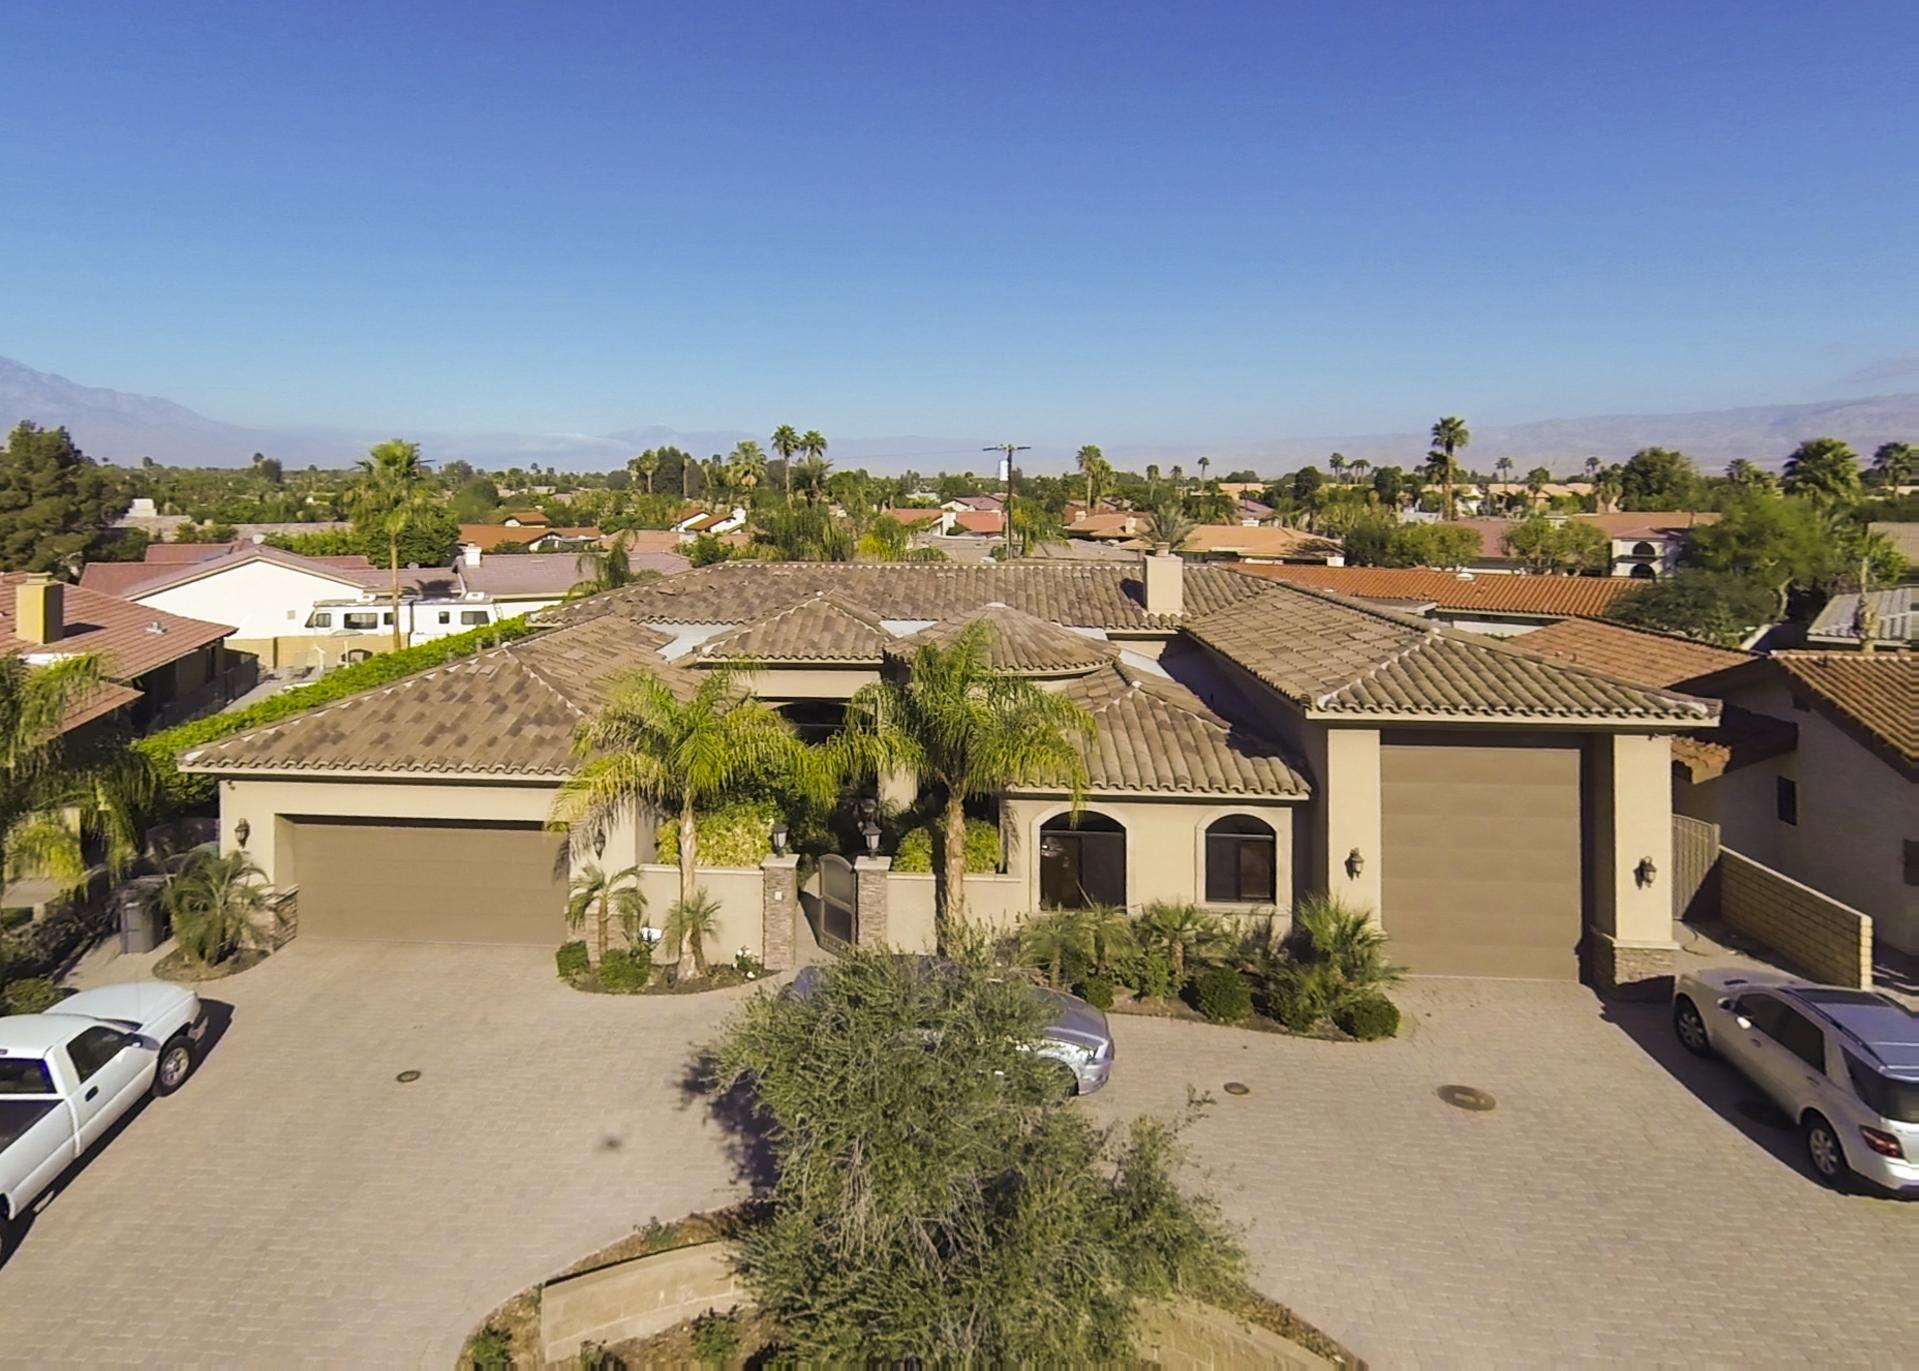 This Amazing 5 Bedroom 5 Bath Tropical Oasis Located In The Beautiful Desert Community Of